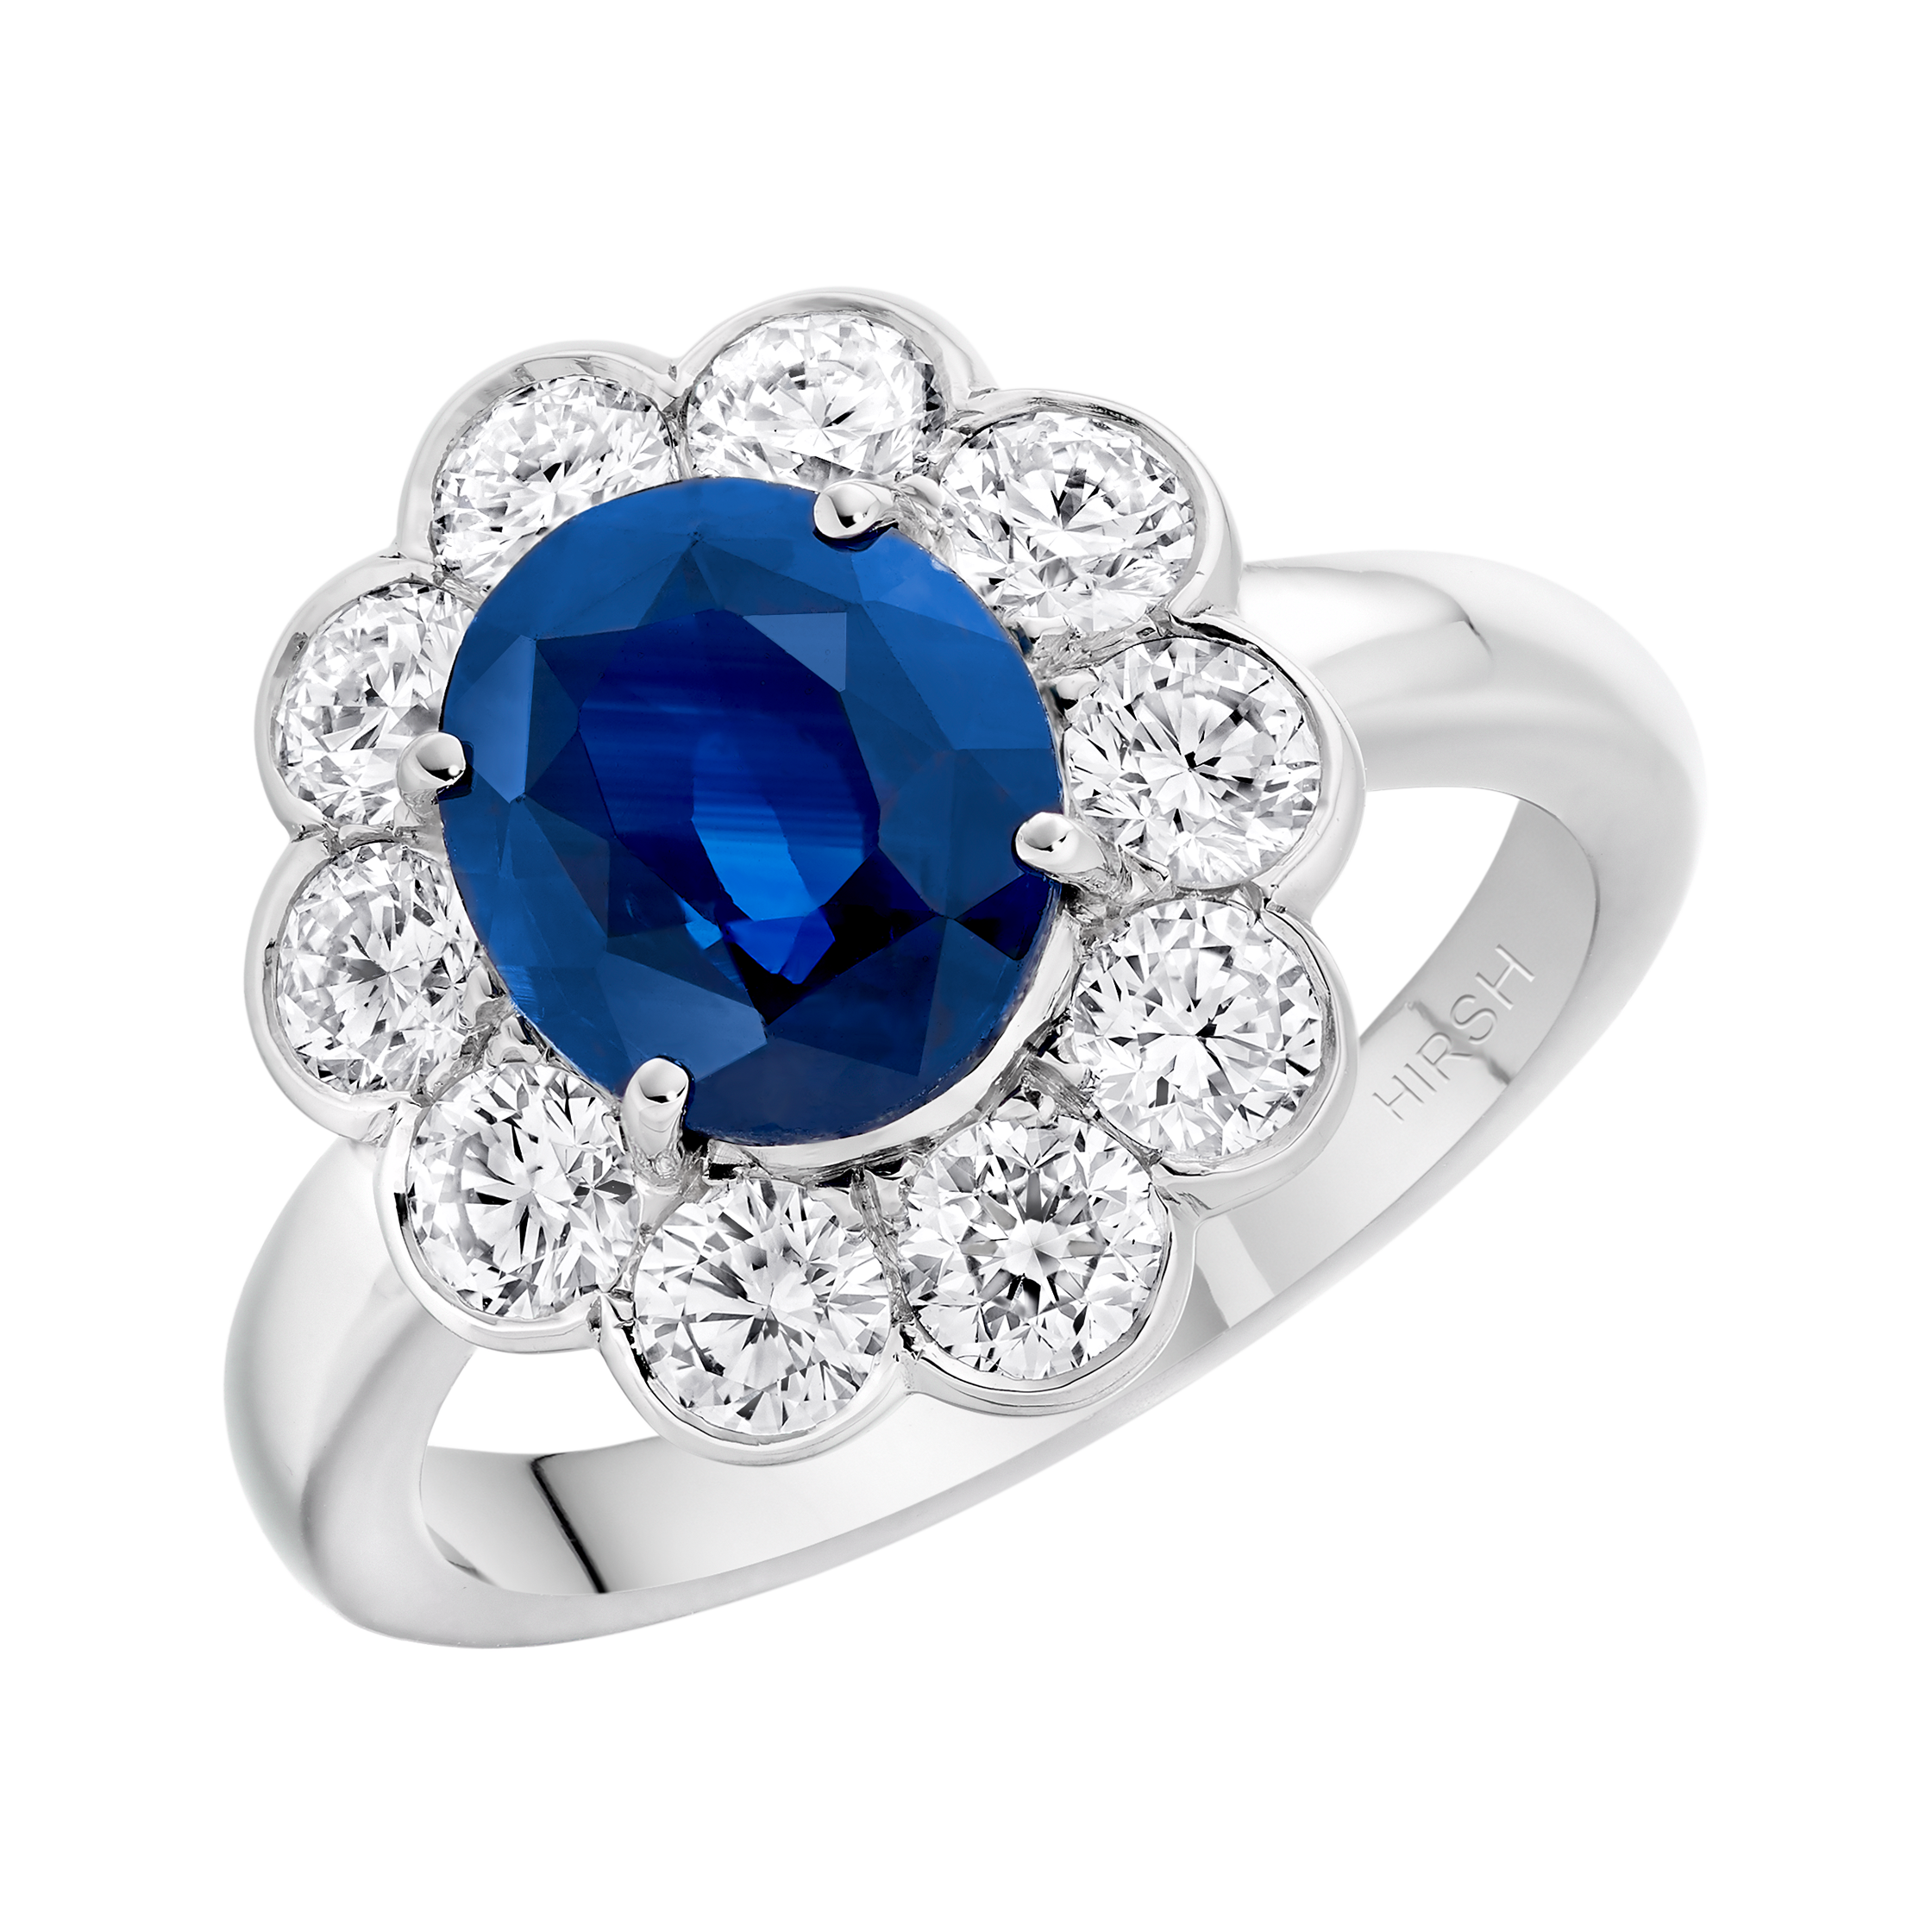 cut precious blue gifts gemstone fine and trillion diamond dinny ring audrey rings sapphire diamonds hall